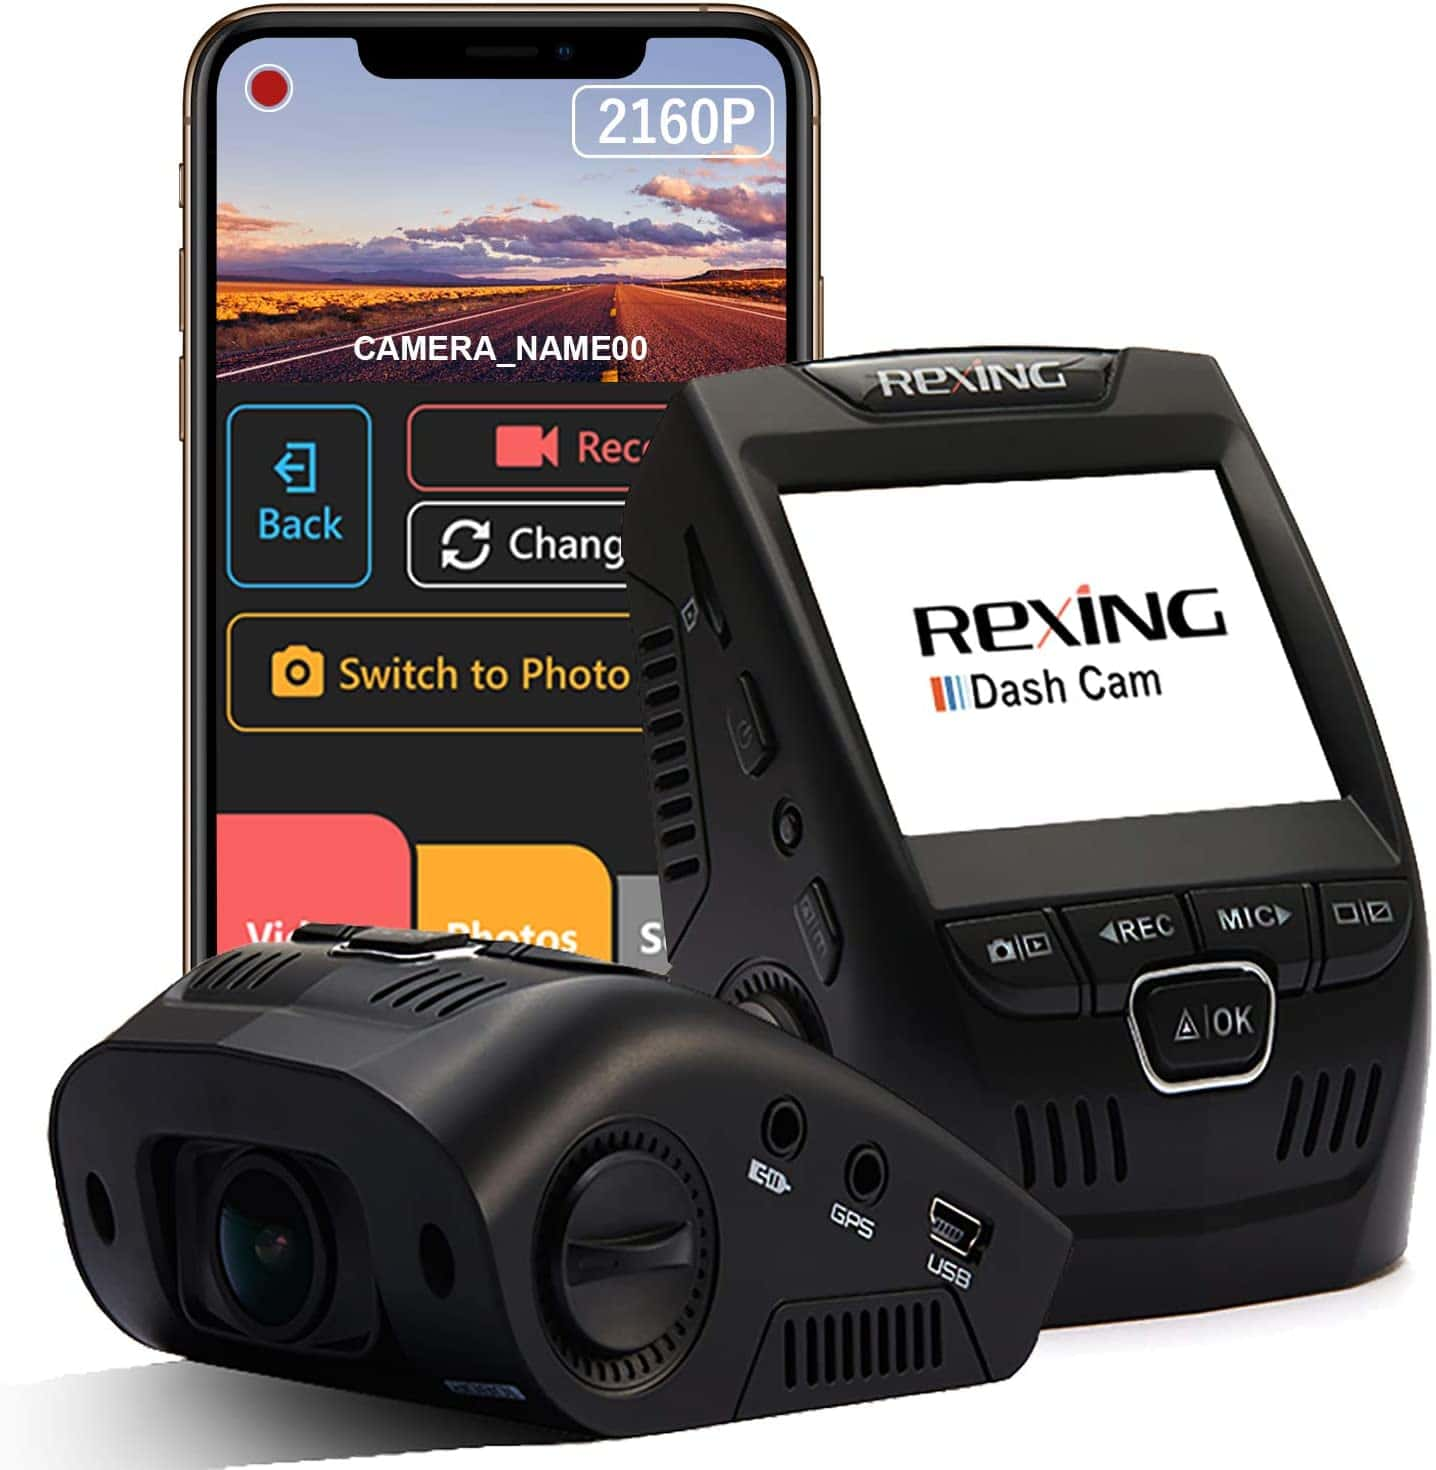 Rexing dashcam and mobile device